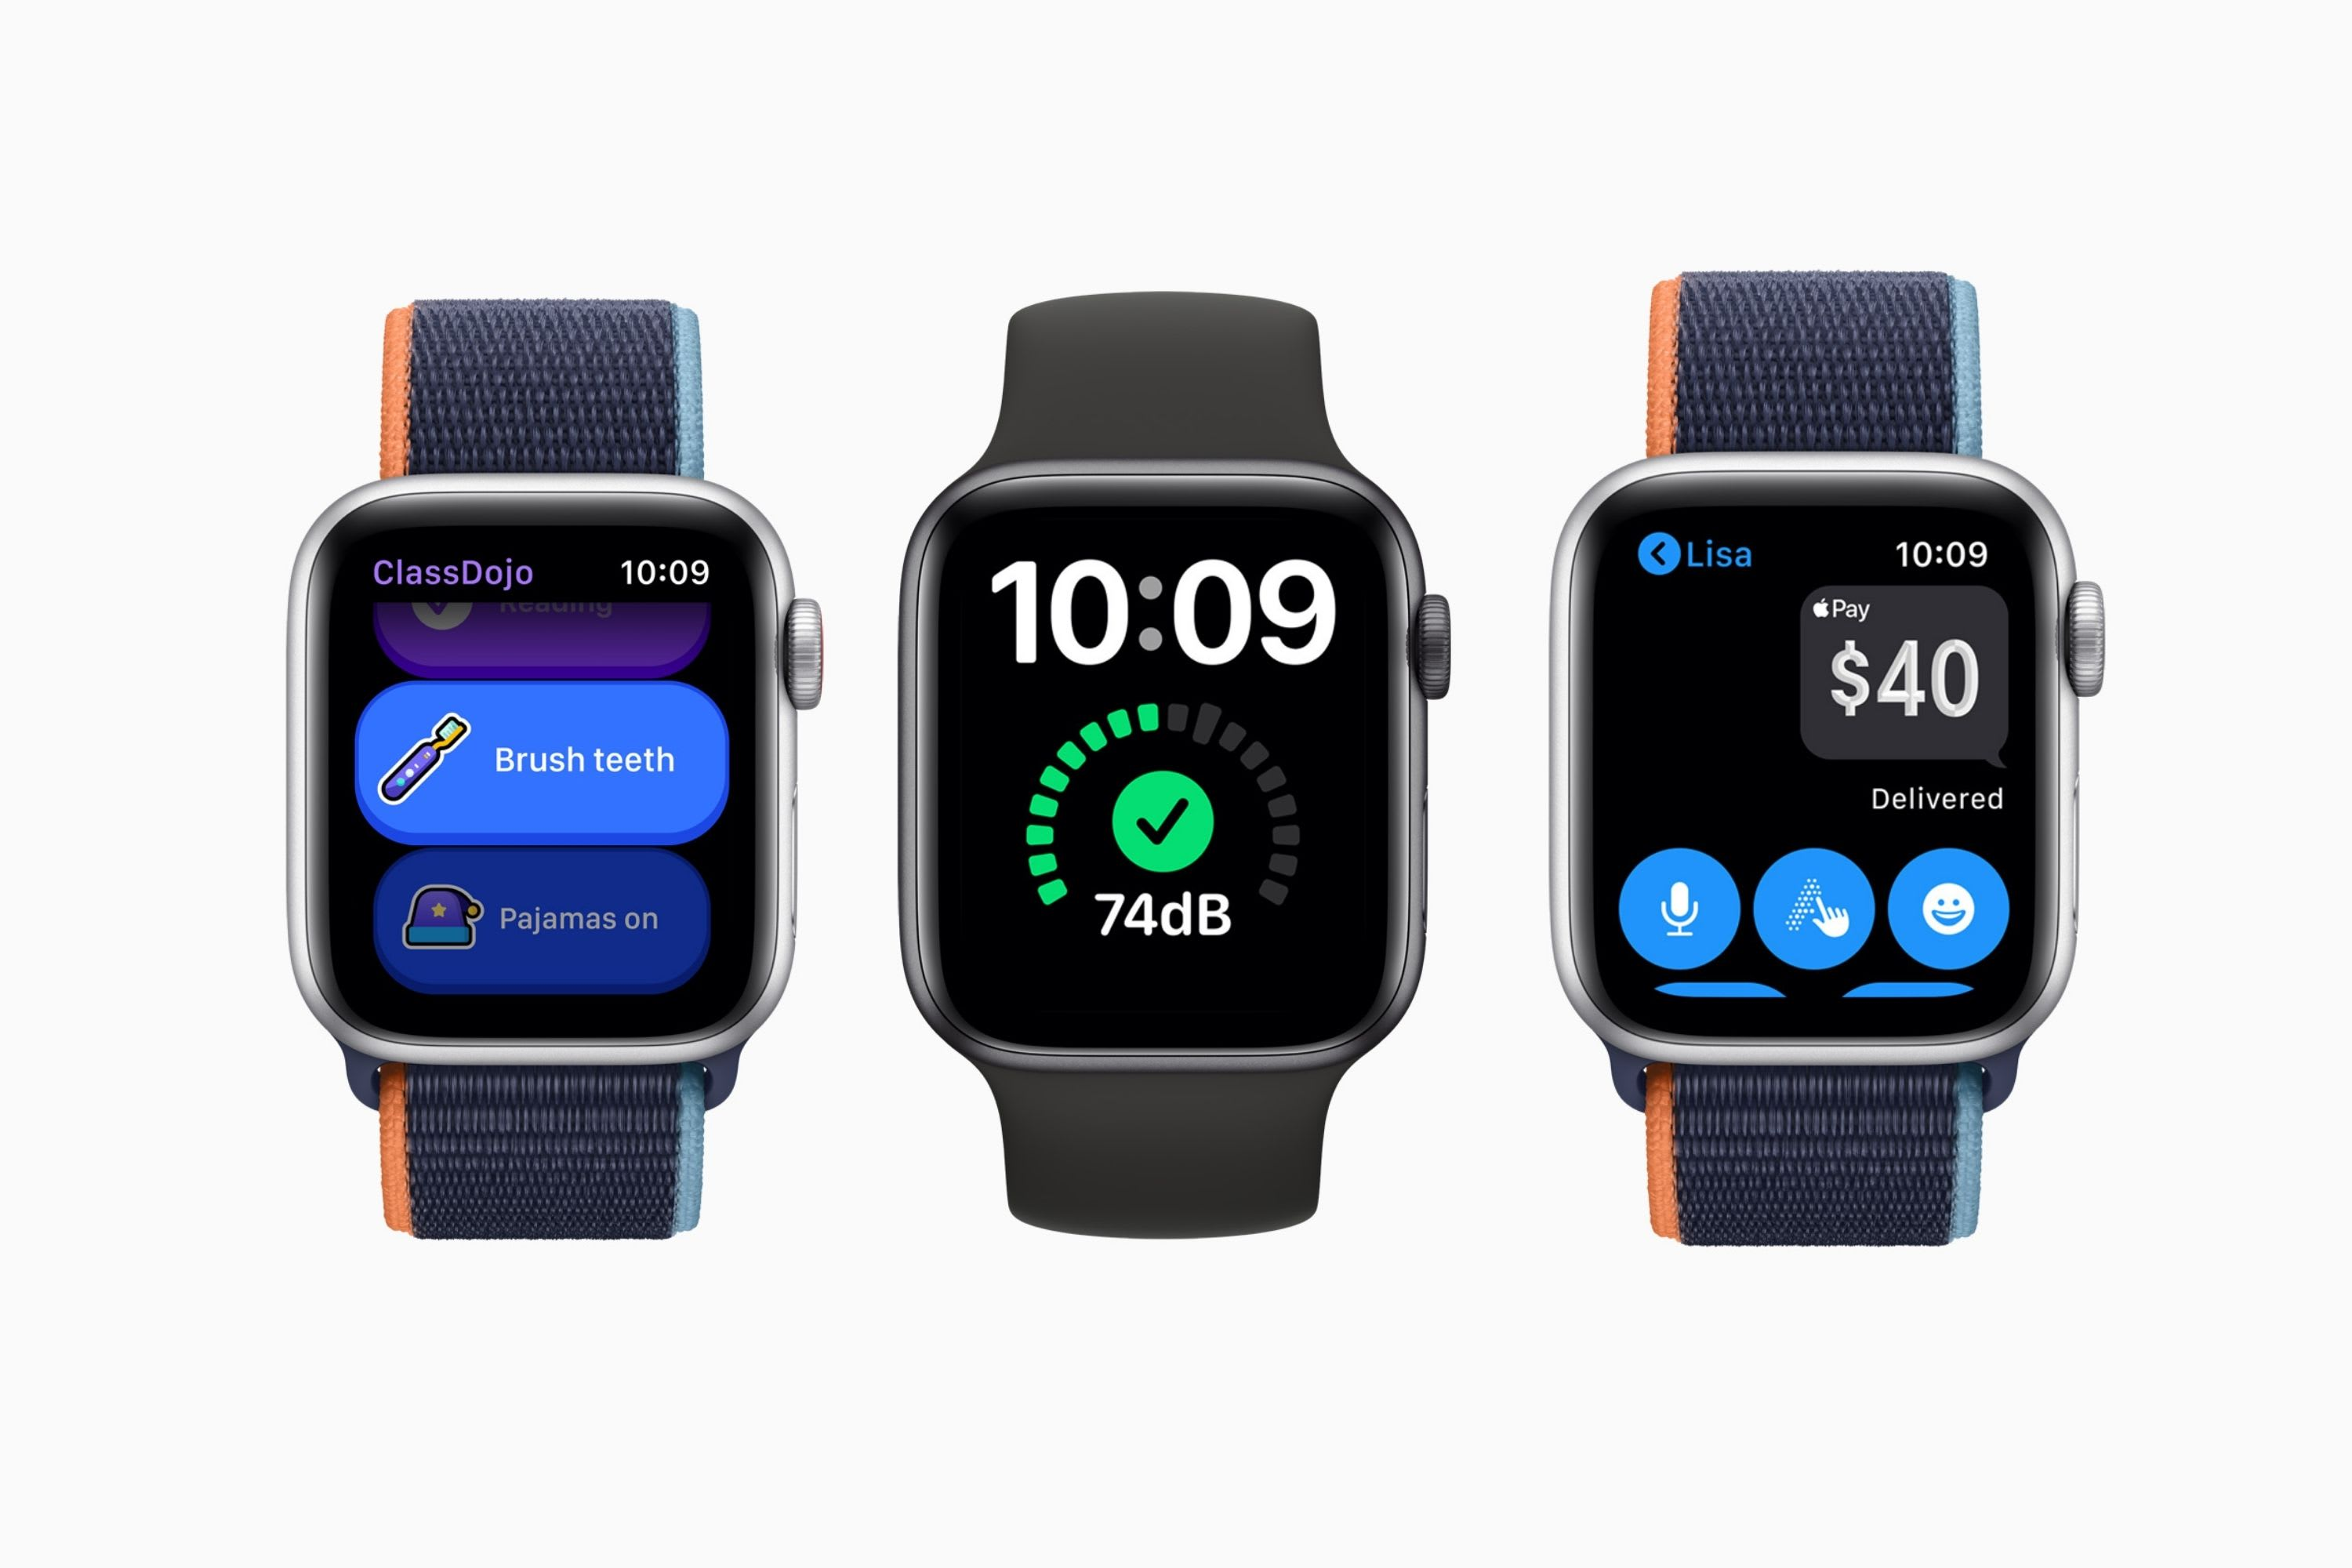 appleone-and-family-setup-coming-to-watchos-7-and-ipados-14-20200915-7